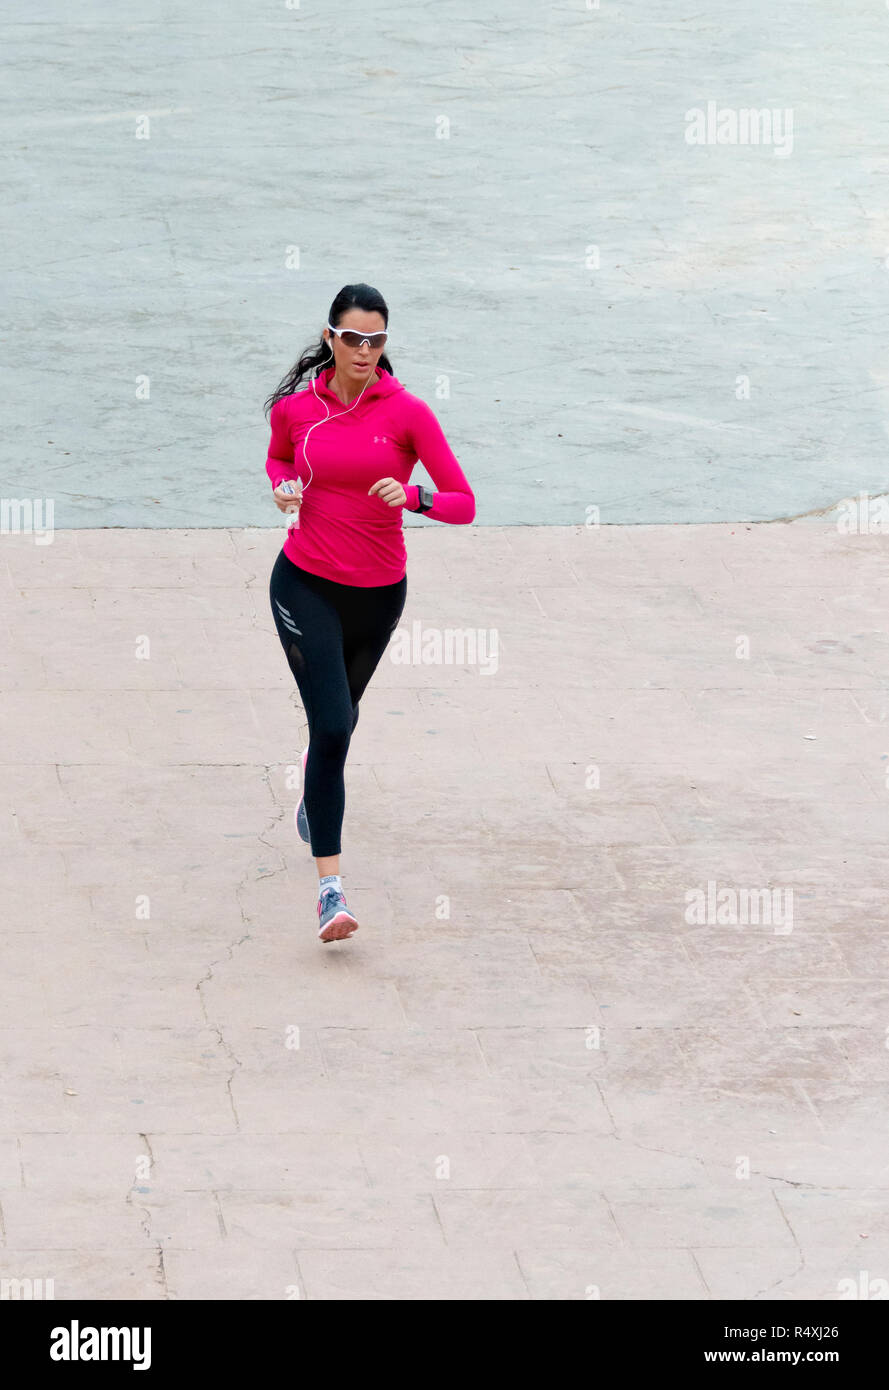 Attractive young woman in pink top and sunglasses keeping fit jogging - Stock Image